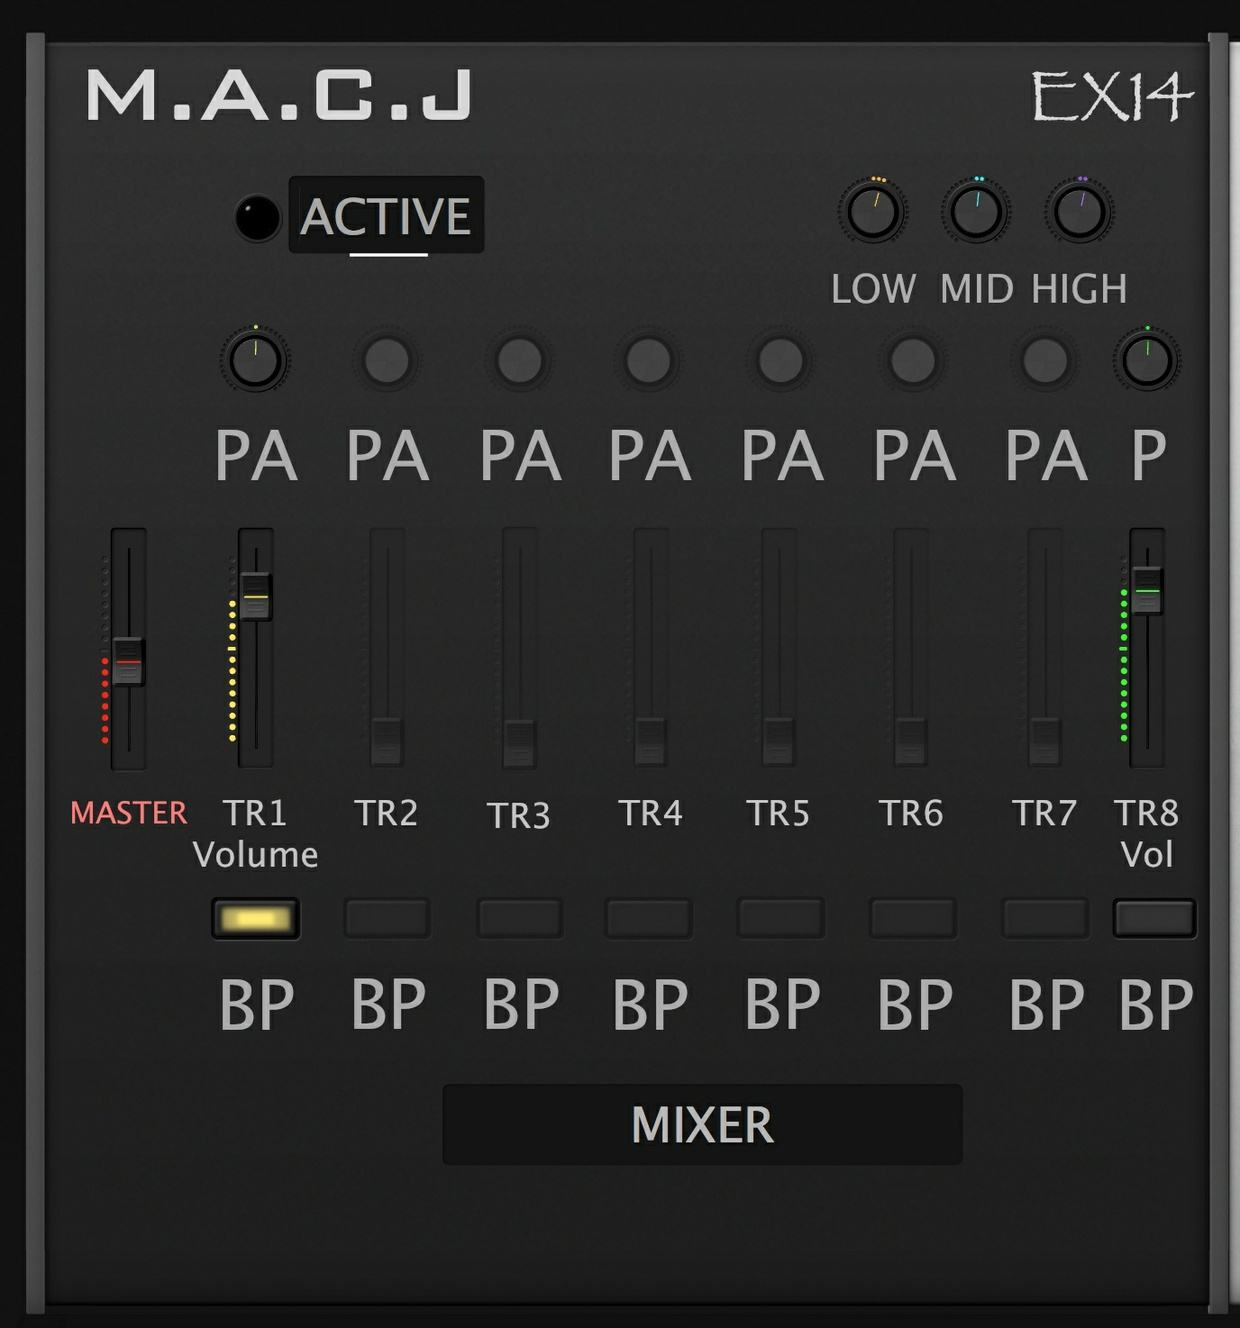 M.A.C.J EX14 SynthRack